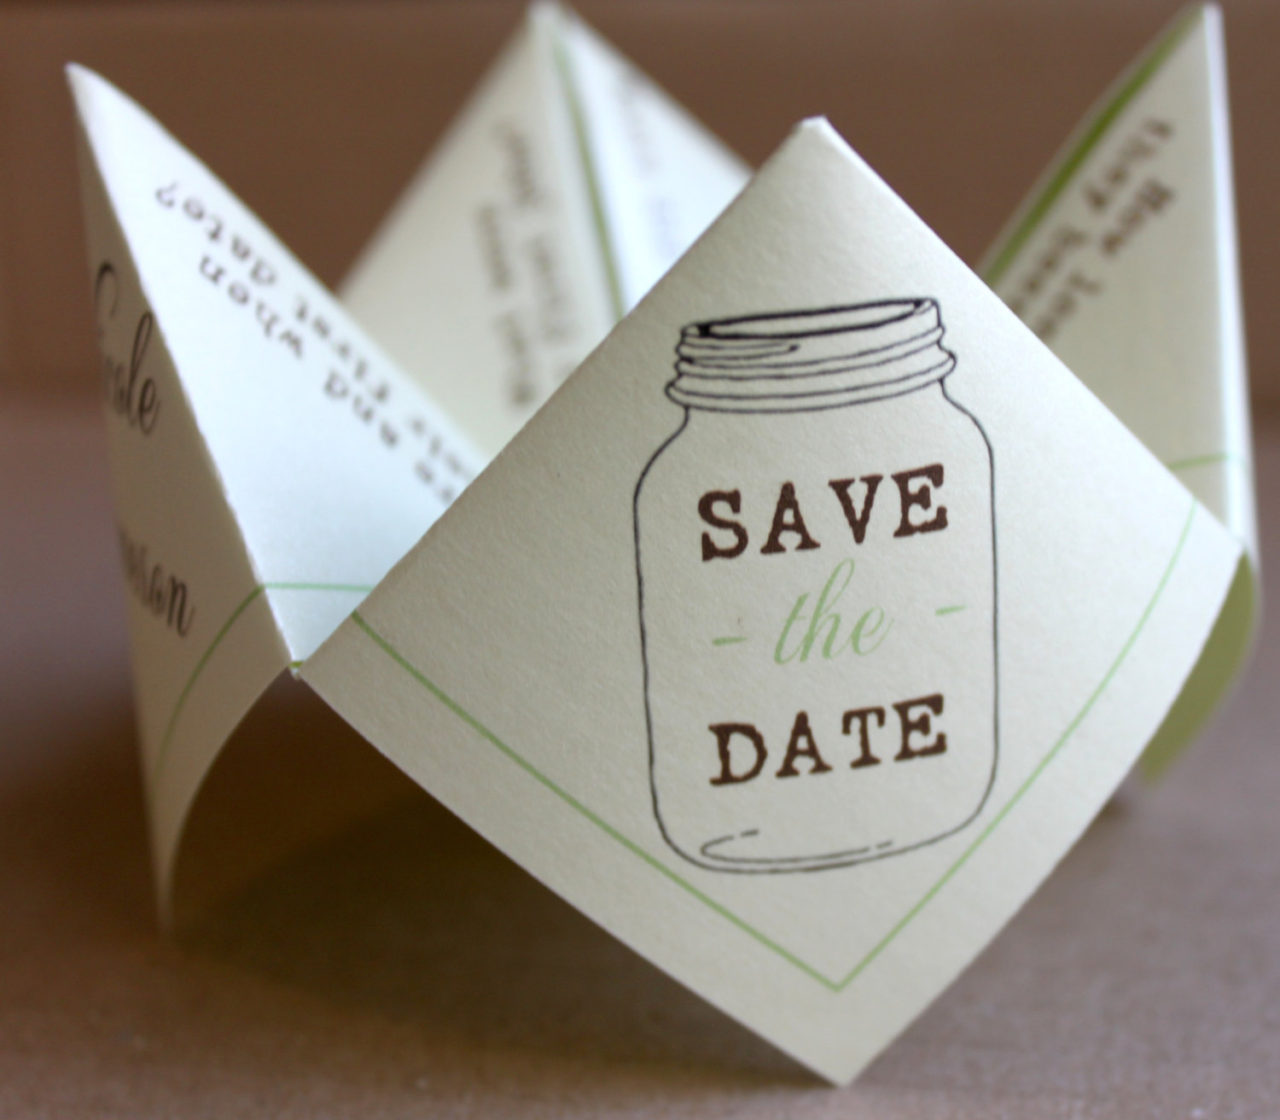 15 brilliantly creative save the date ideas weddingsonline cootie catcher save the date mason junglespirit Choice Image